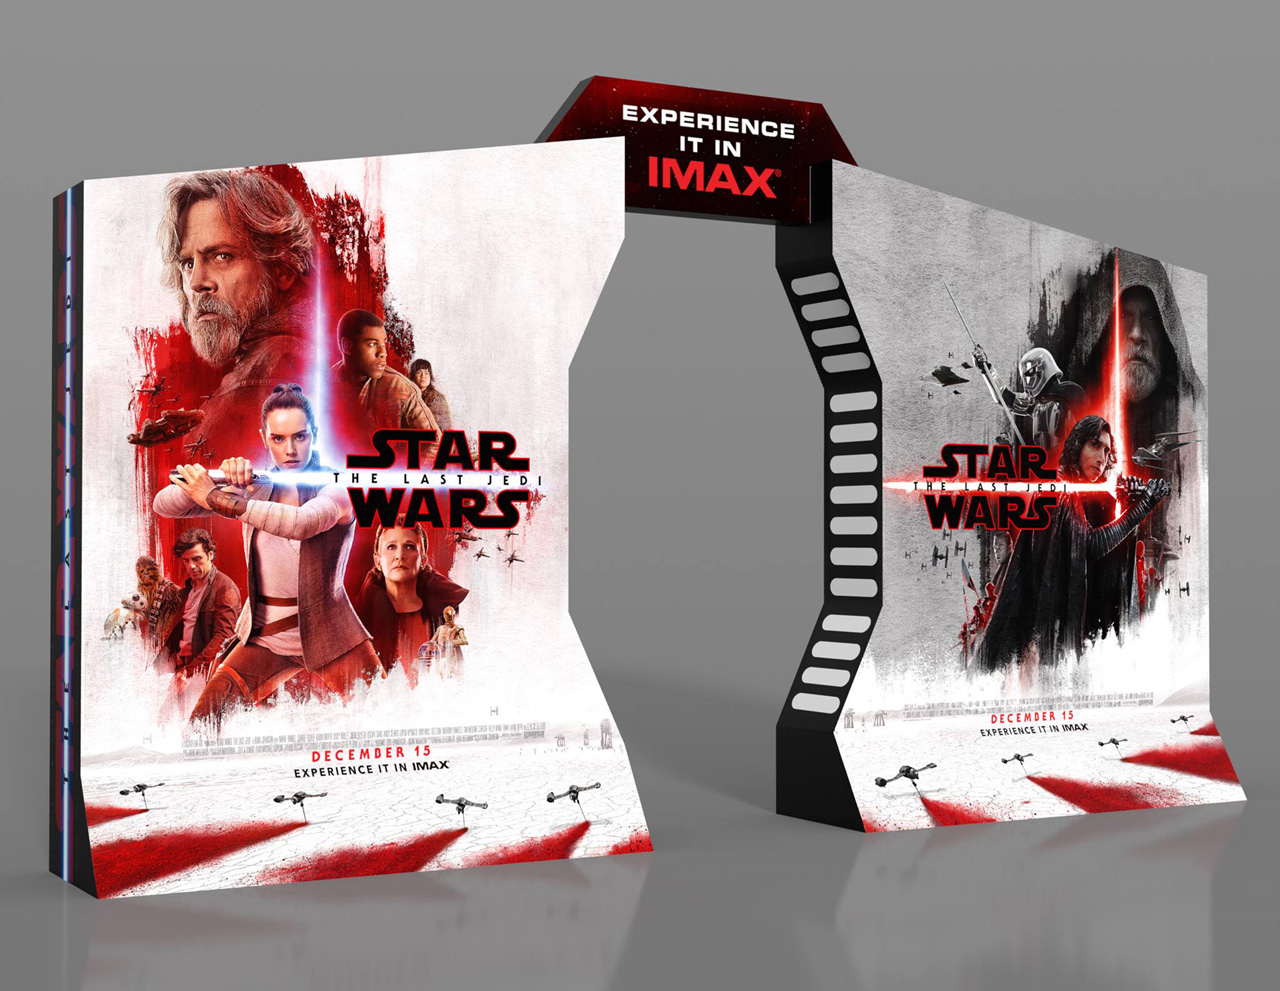 Star Wars: The Last Jedi IMAX Standee